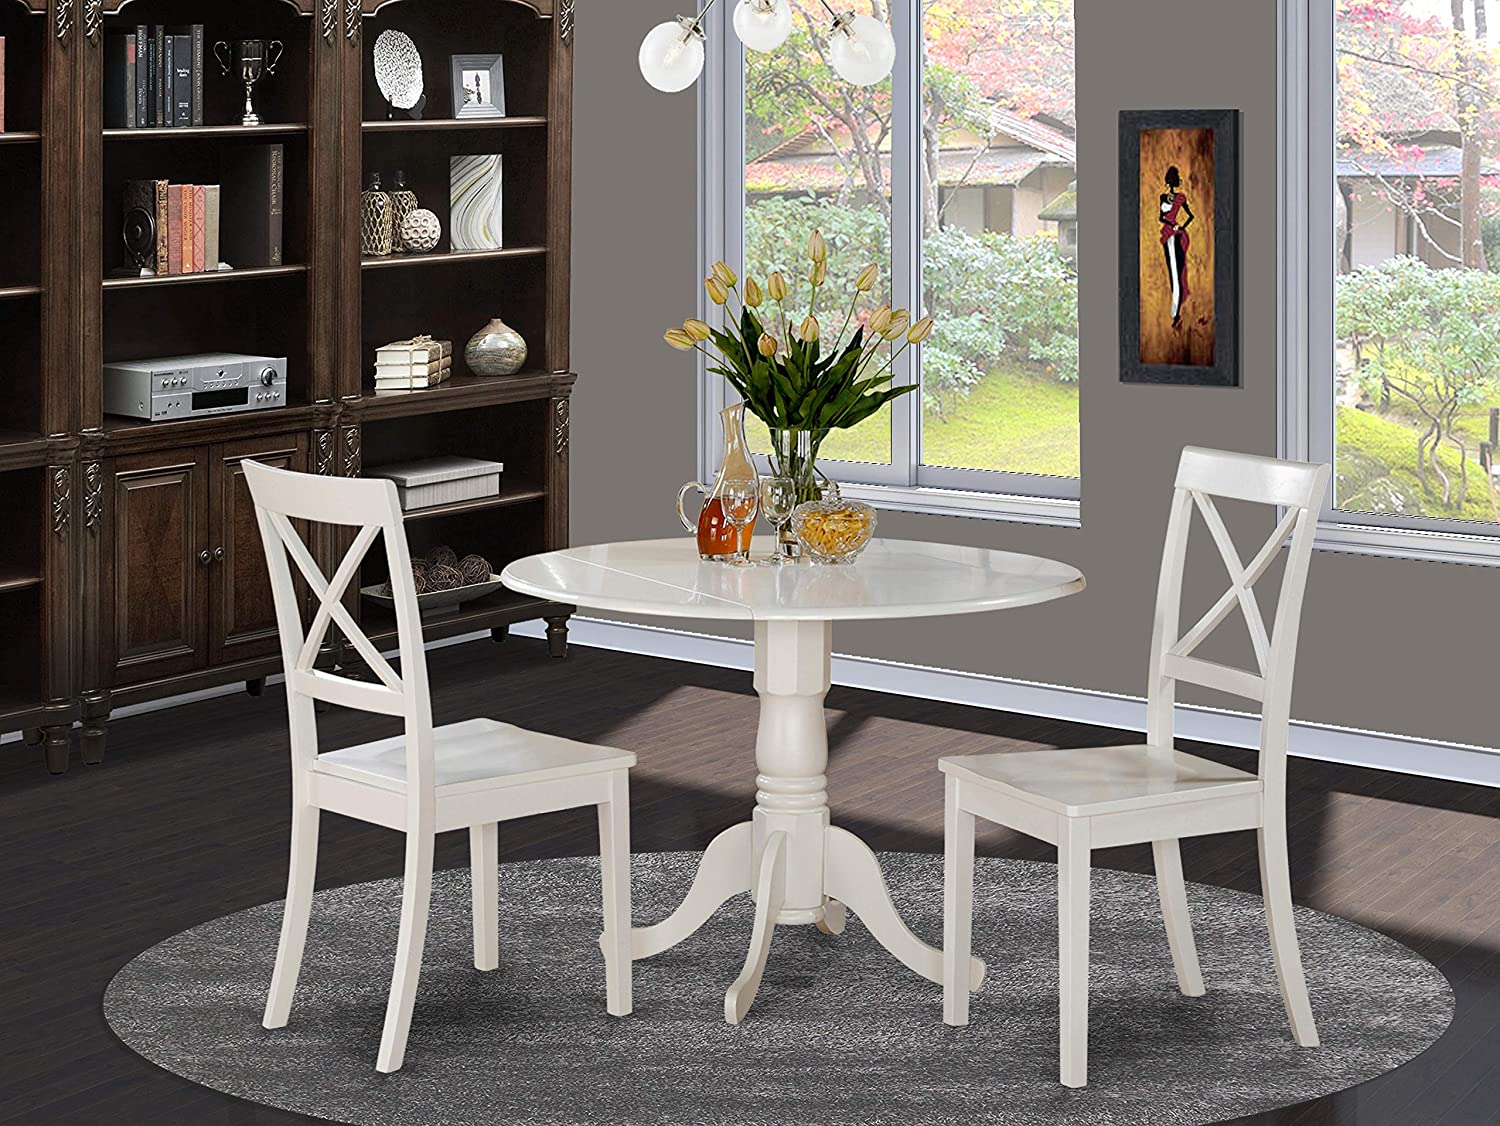 DLBO3-WHI-W 3 Pc small Kitchen Table-Kitchen Table and 2 Dining Chairs